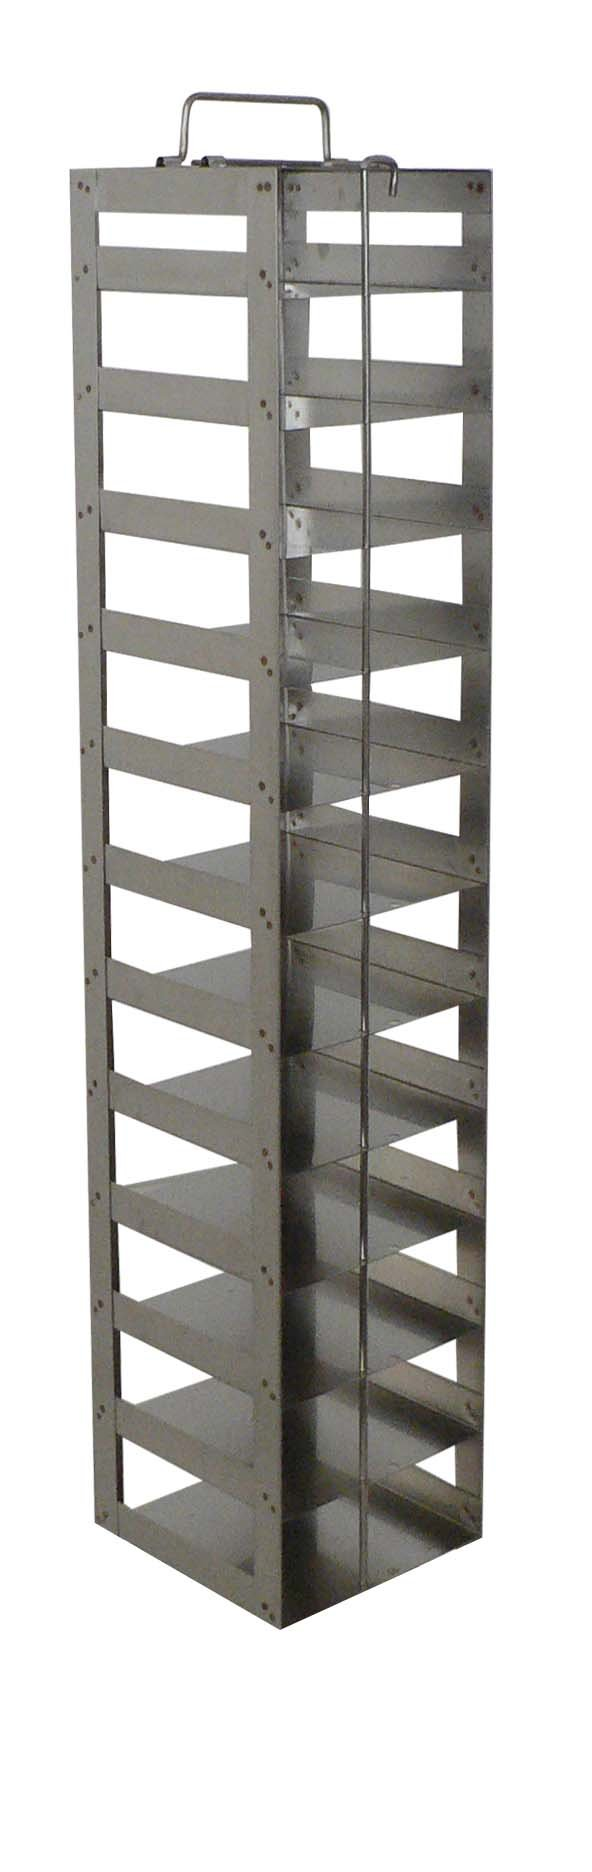 DURA RACK XPRESS CF-12-2 Stainless Steel Vertical Chest Freezer Rack for 2'' Boxes